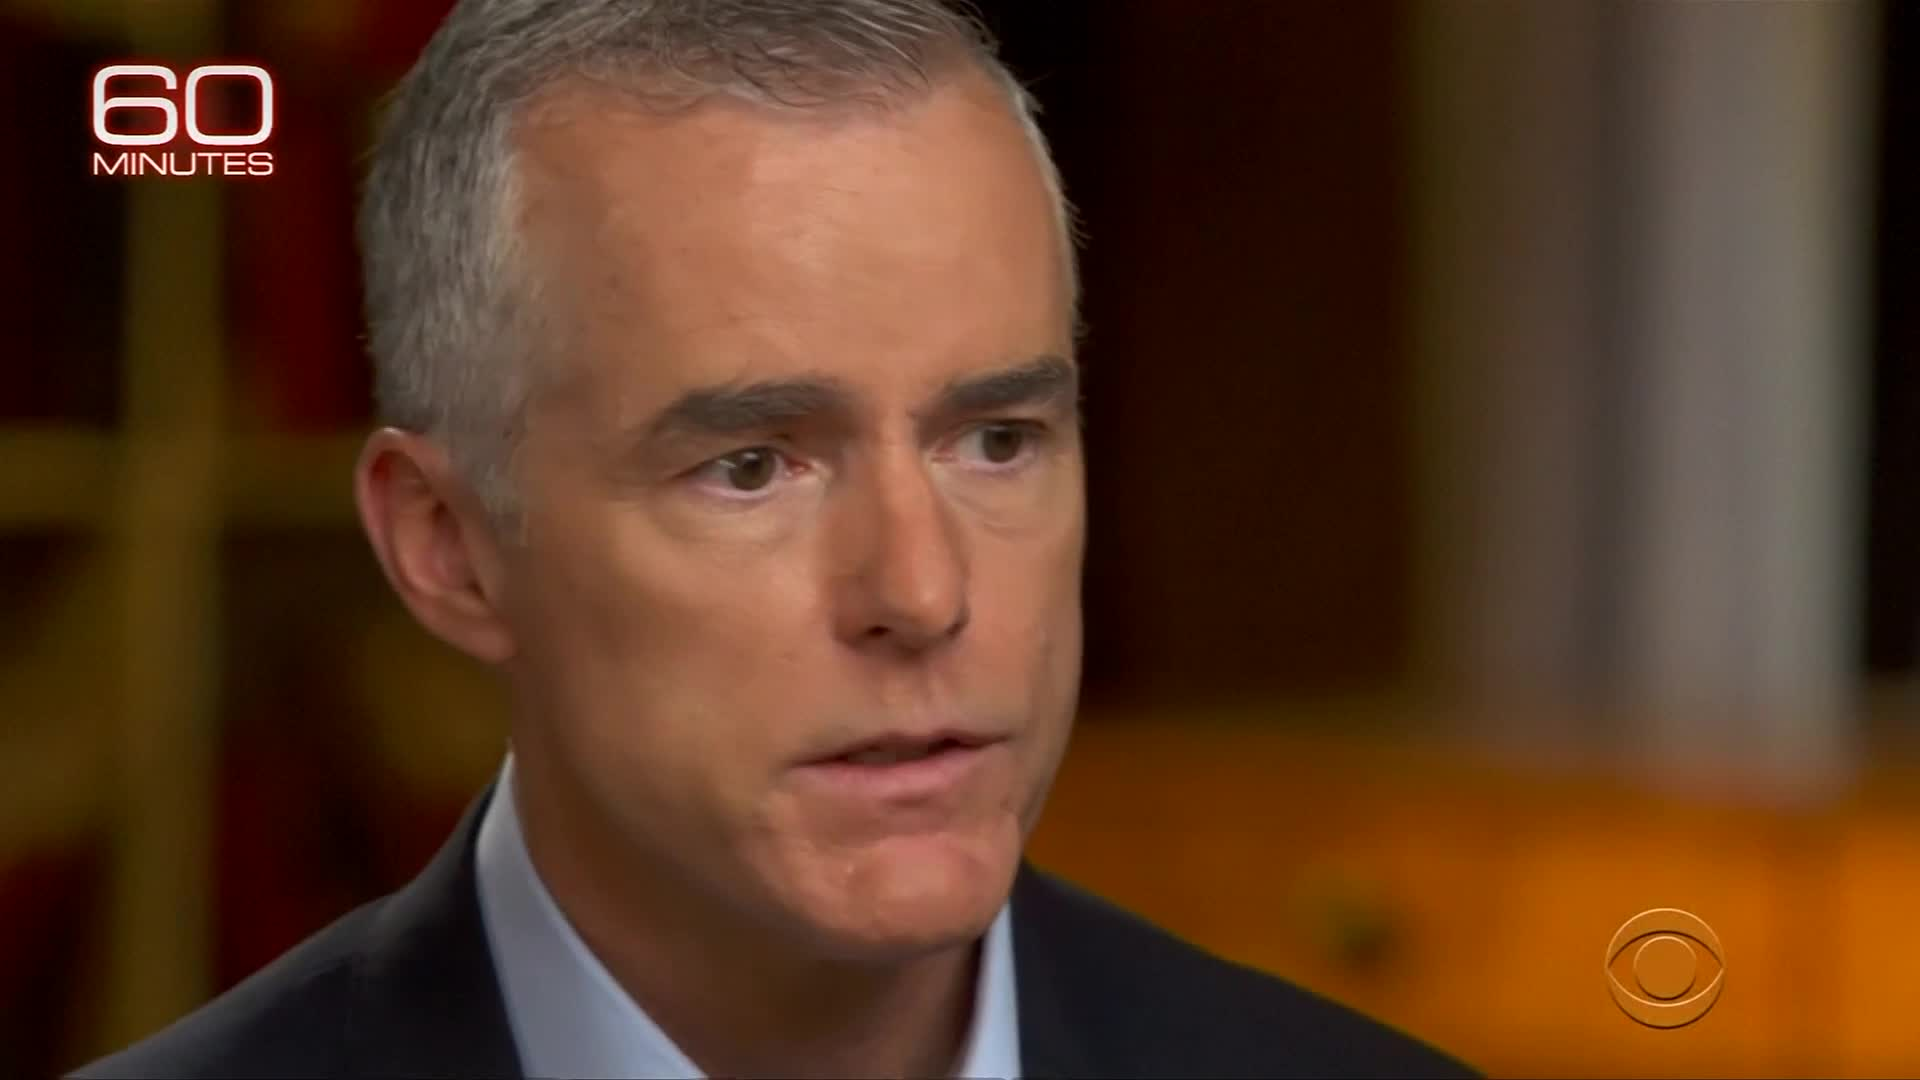 Andrew McCabe stunned by 'remarkable' number of Russian contacts in Trump's circle